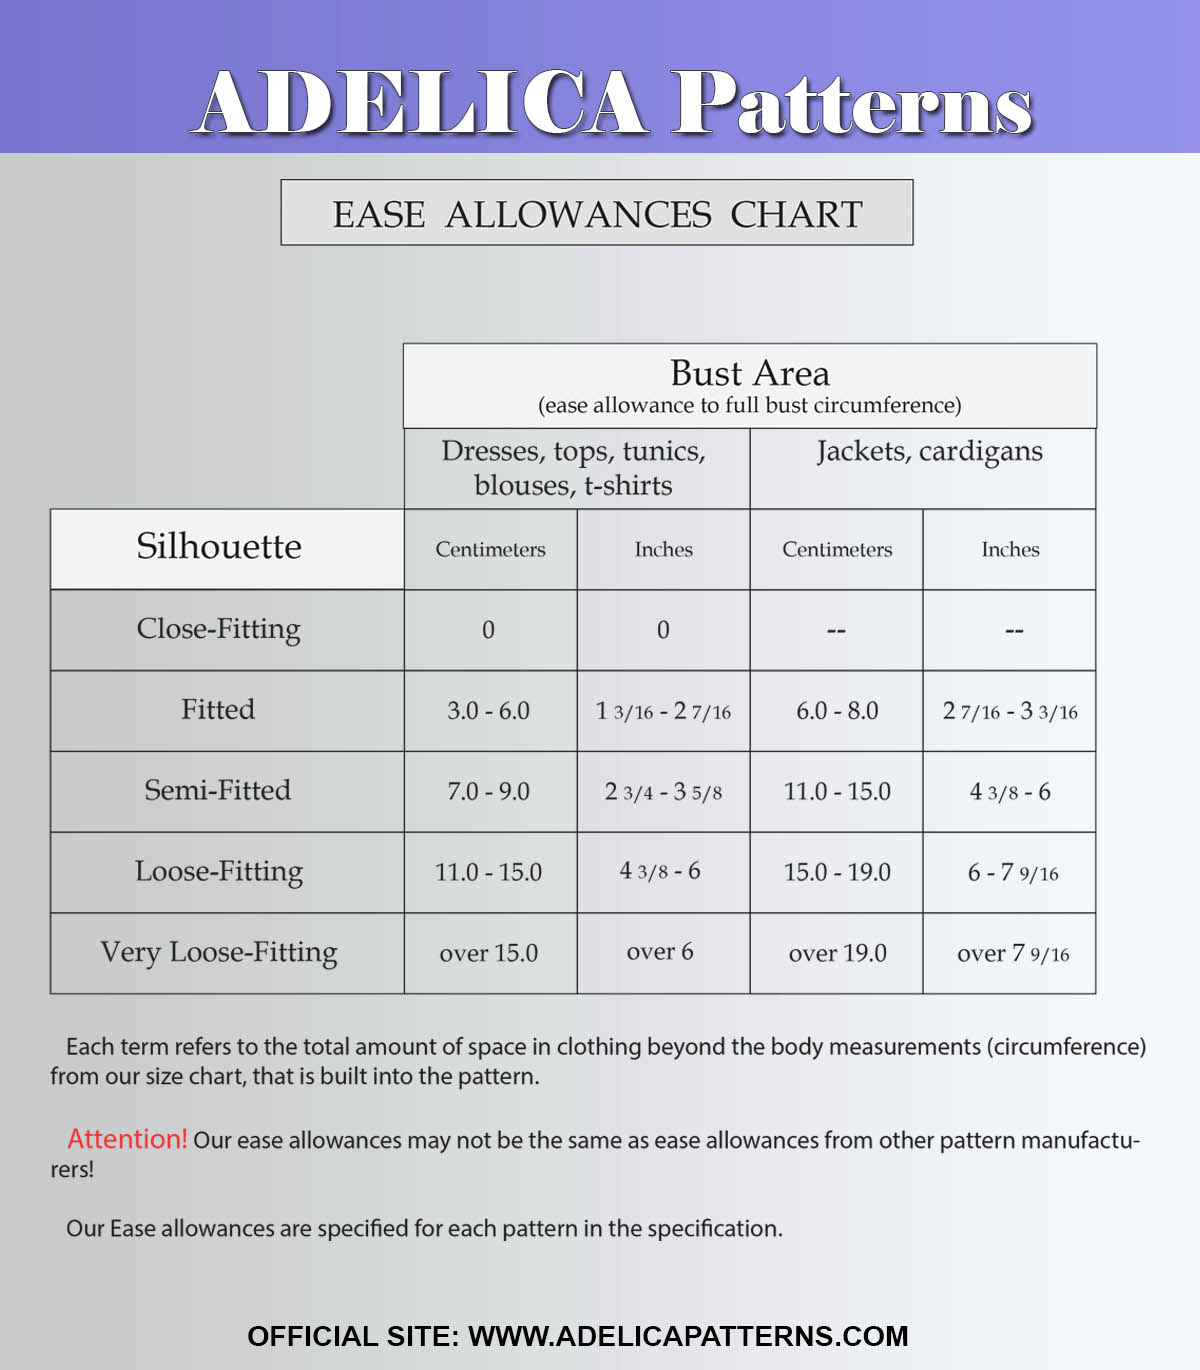 ease allowances chart adelica patterns